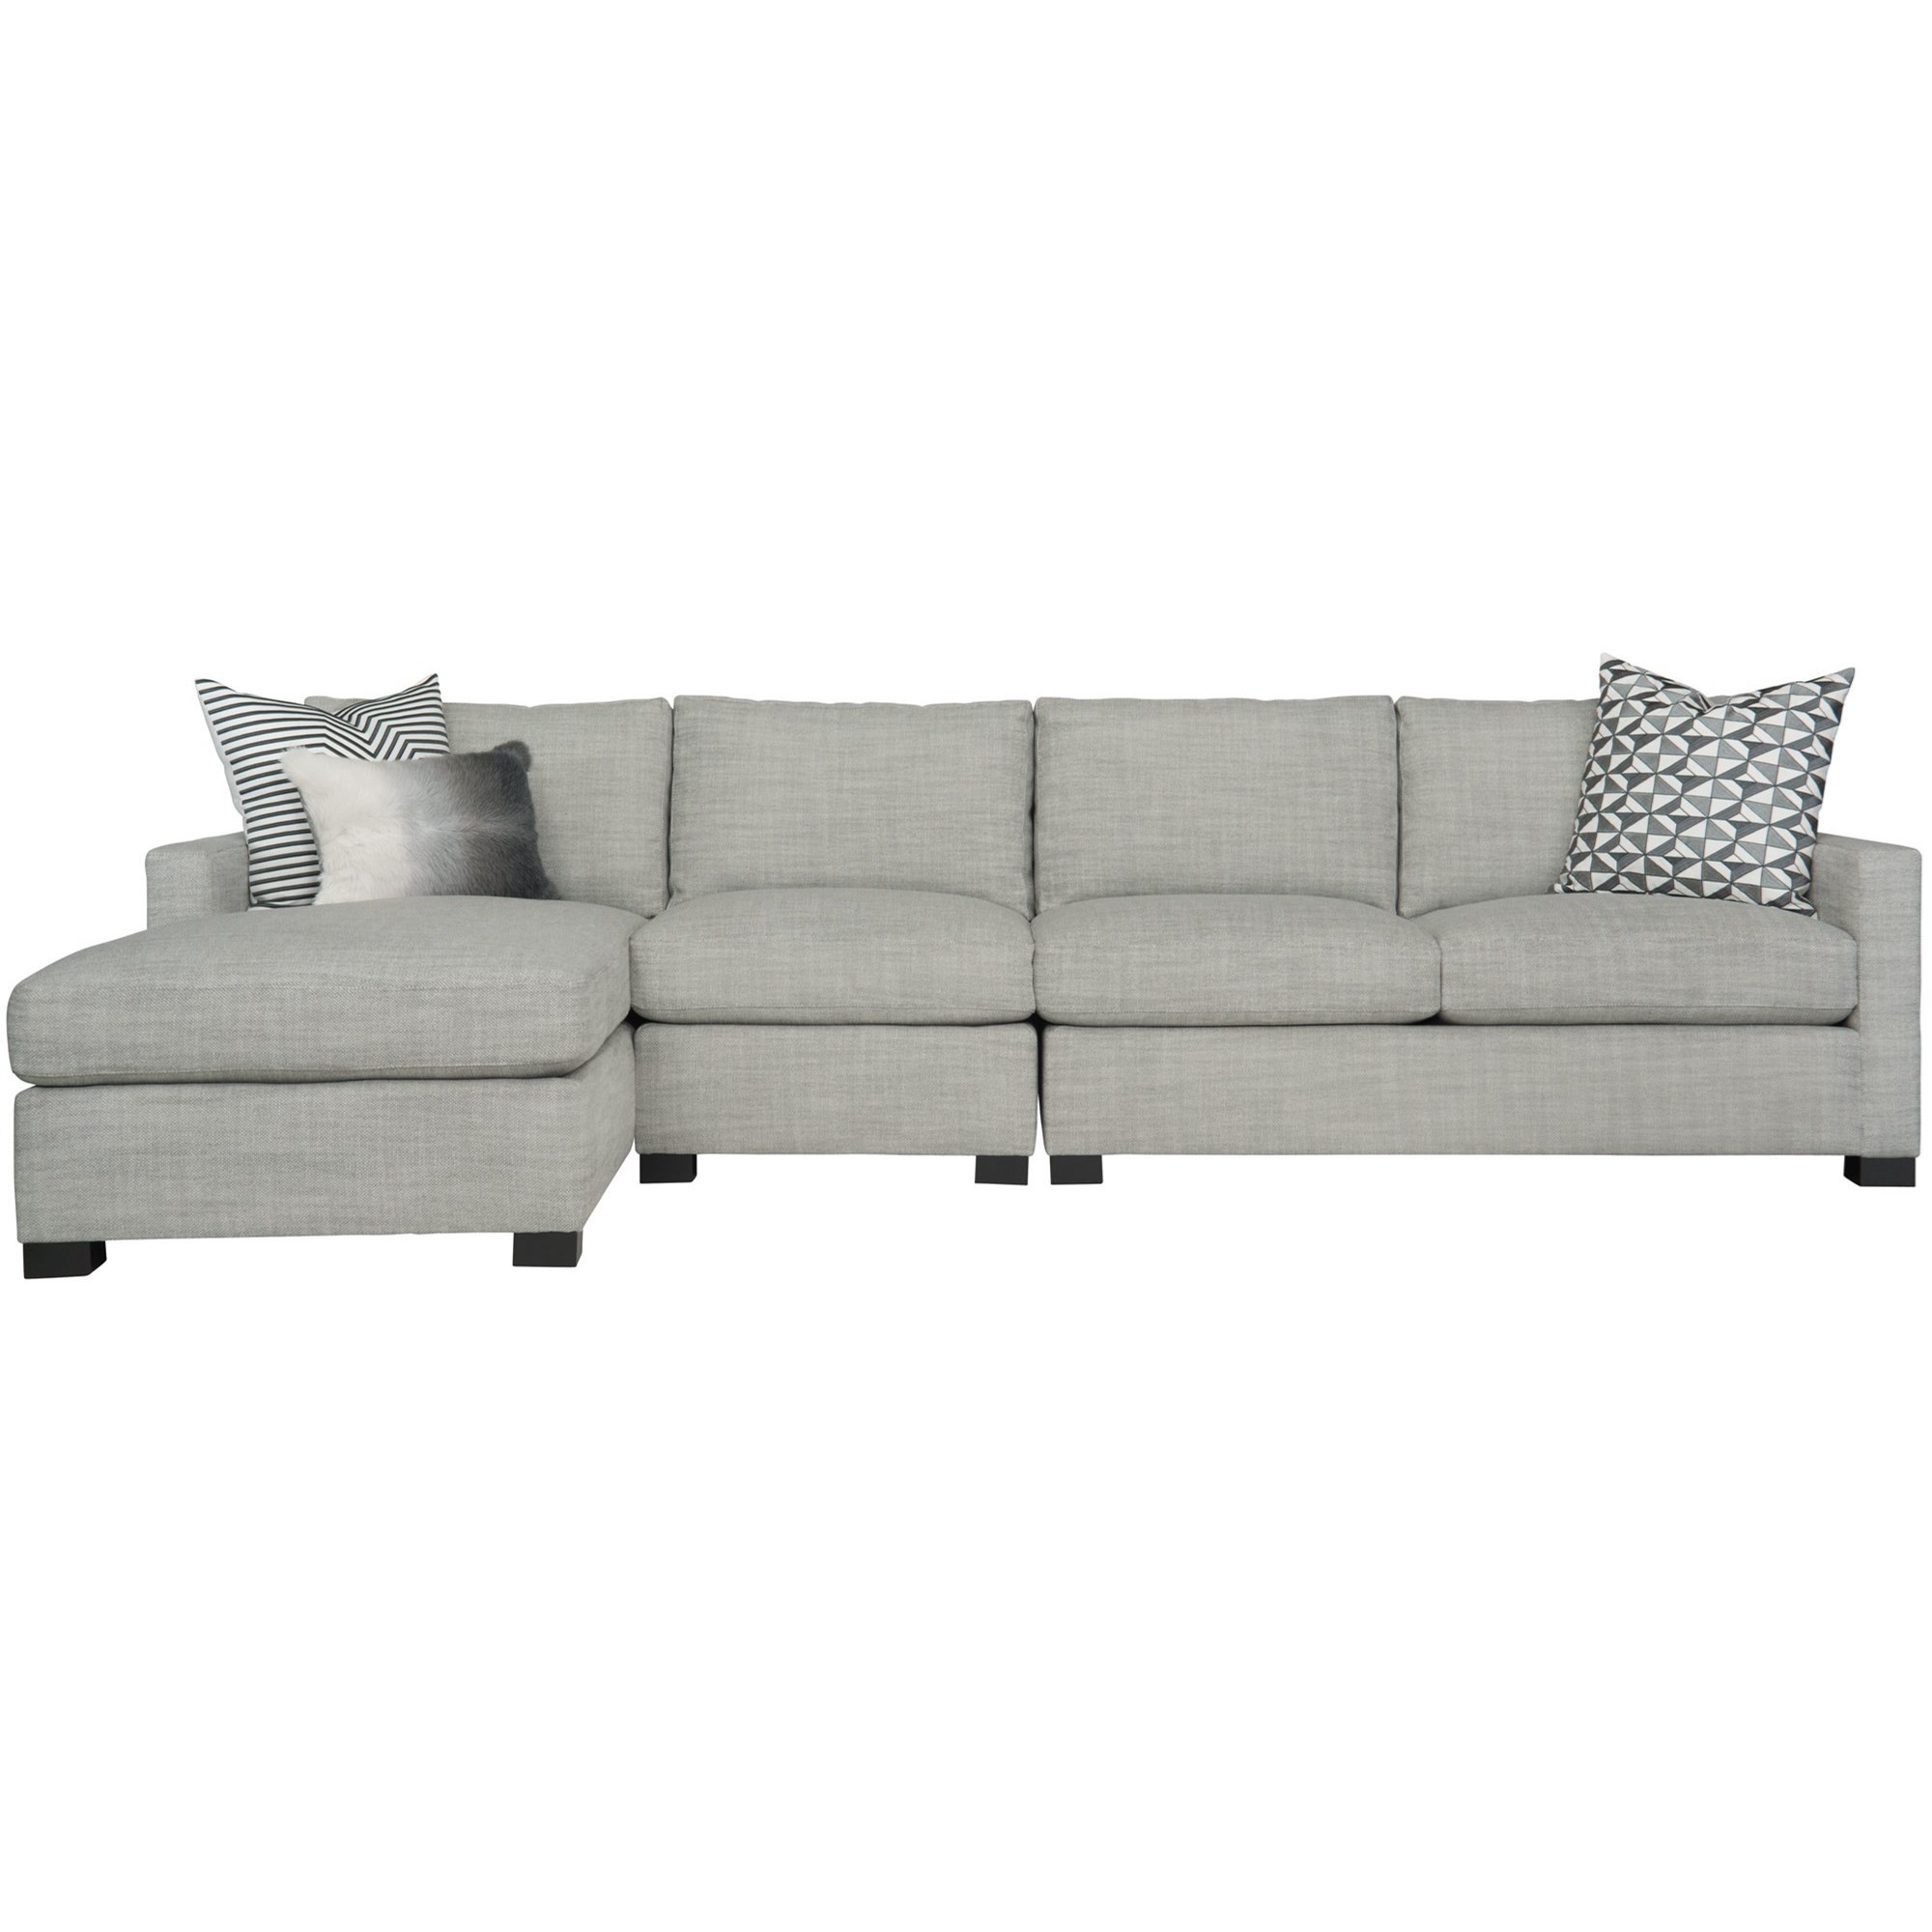 Interiors - Kelsey 3-Piece Sectional by Bernhardt at Baer's Furniture